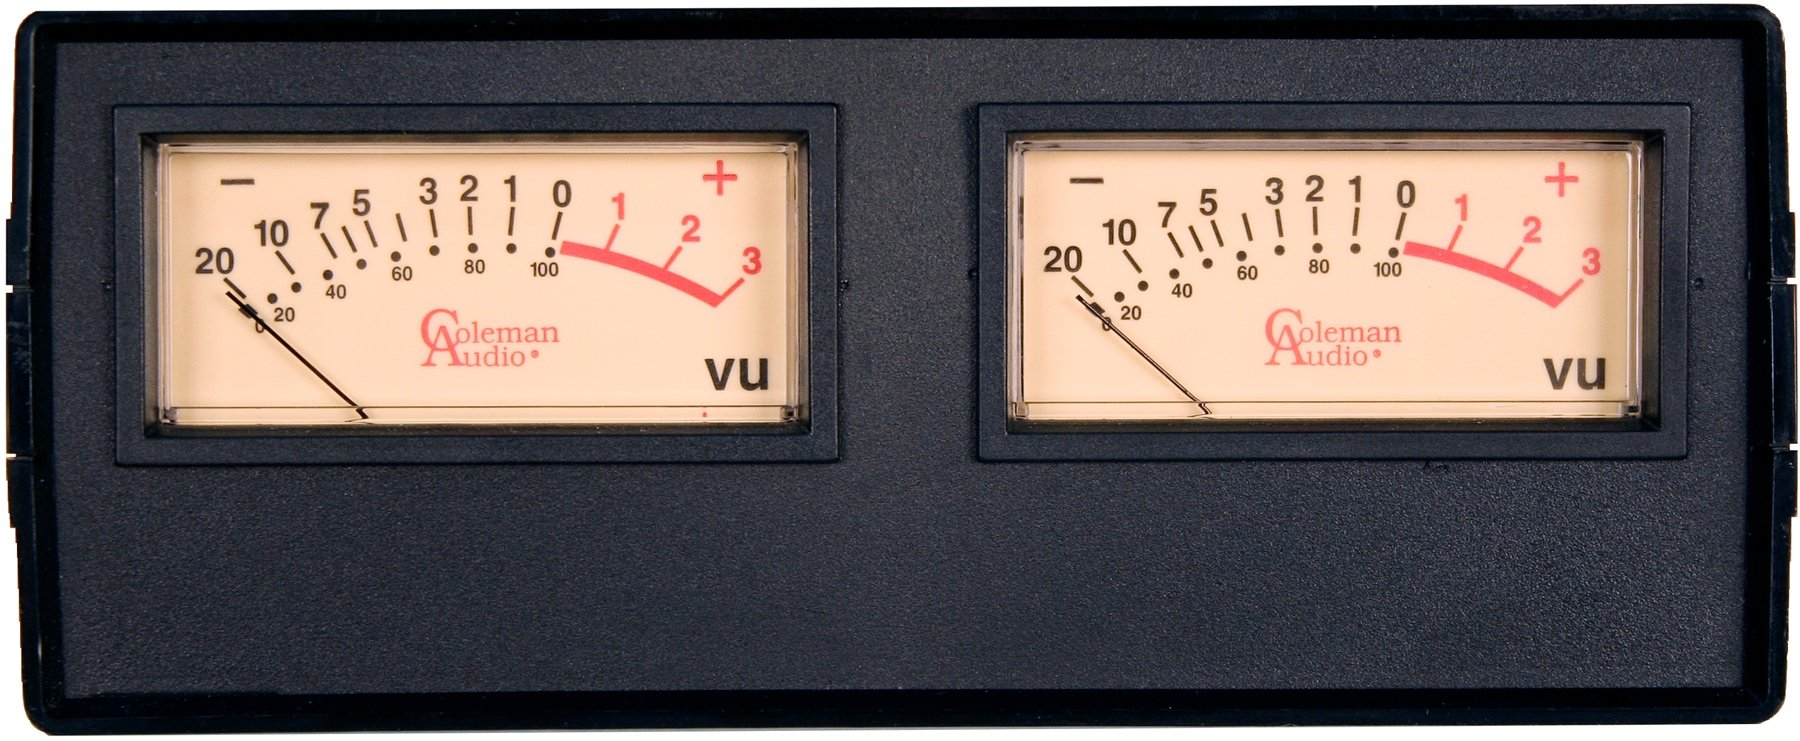 Coleman Audio Mbp2 Dual Vu Meter Module Sweetwater How To Build 4 Image 1